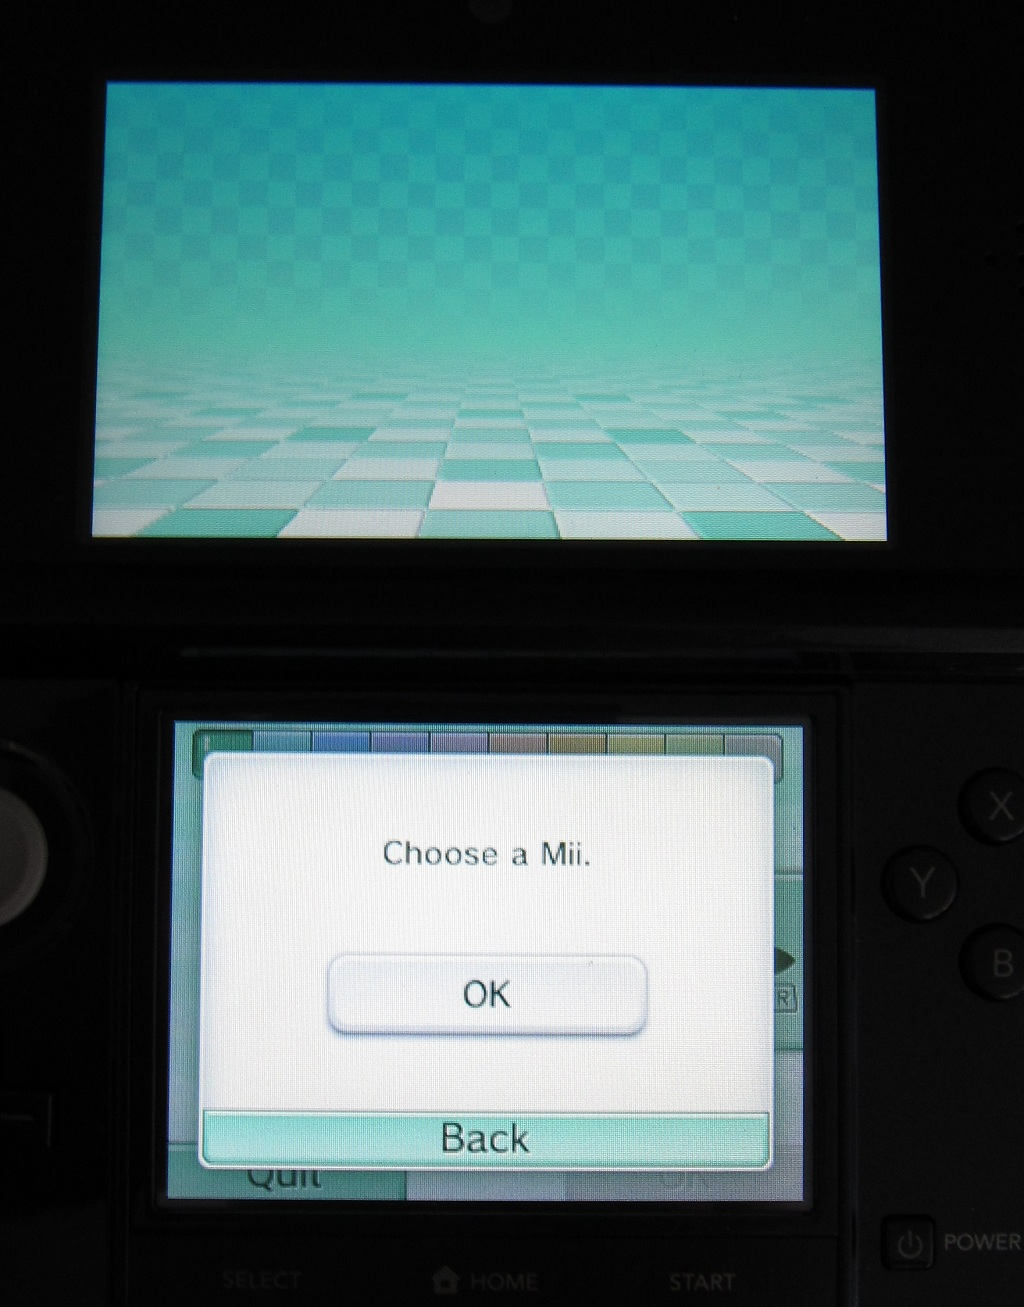 Nintendo 3DS: Create QR Code Image of Mii for Sharing